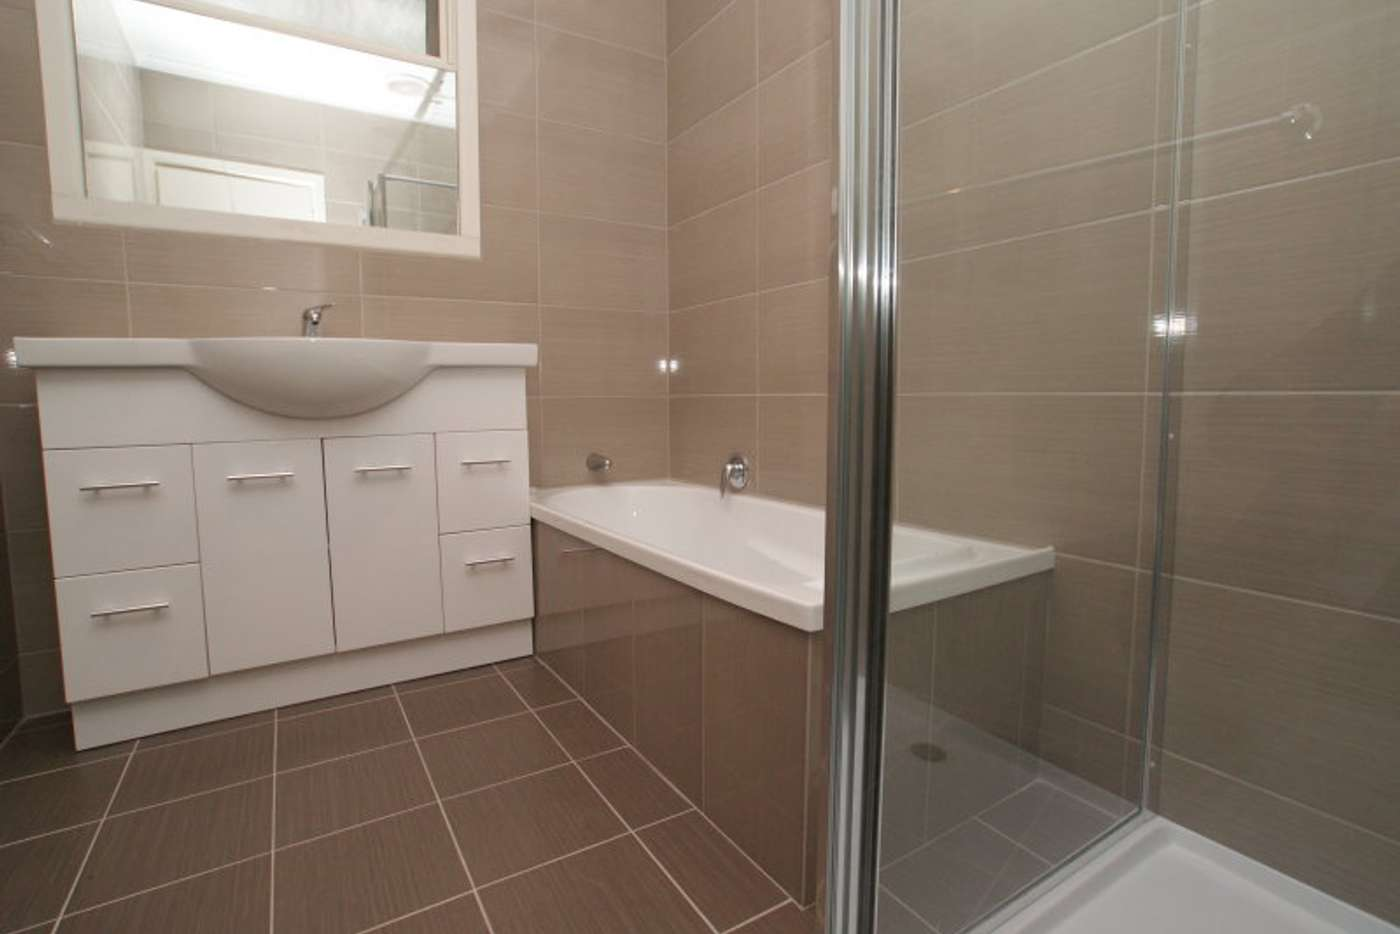 Seventh view of Homely unit listing, 19 Leonie Avenue, Mount Waverley VIC 3149